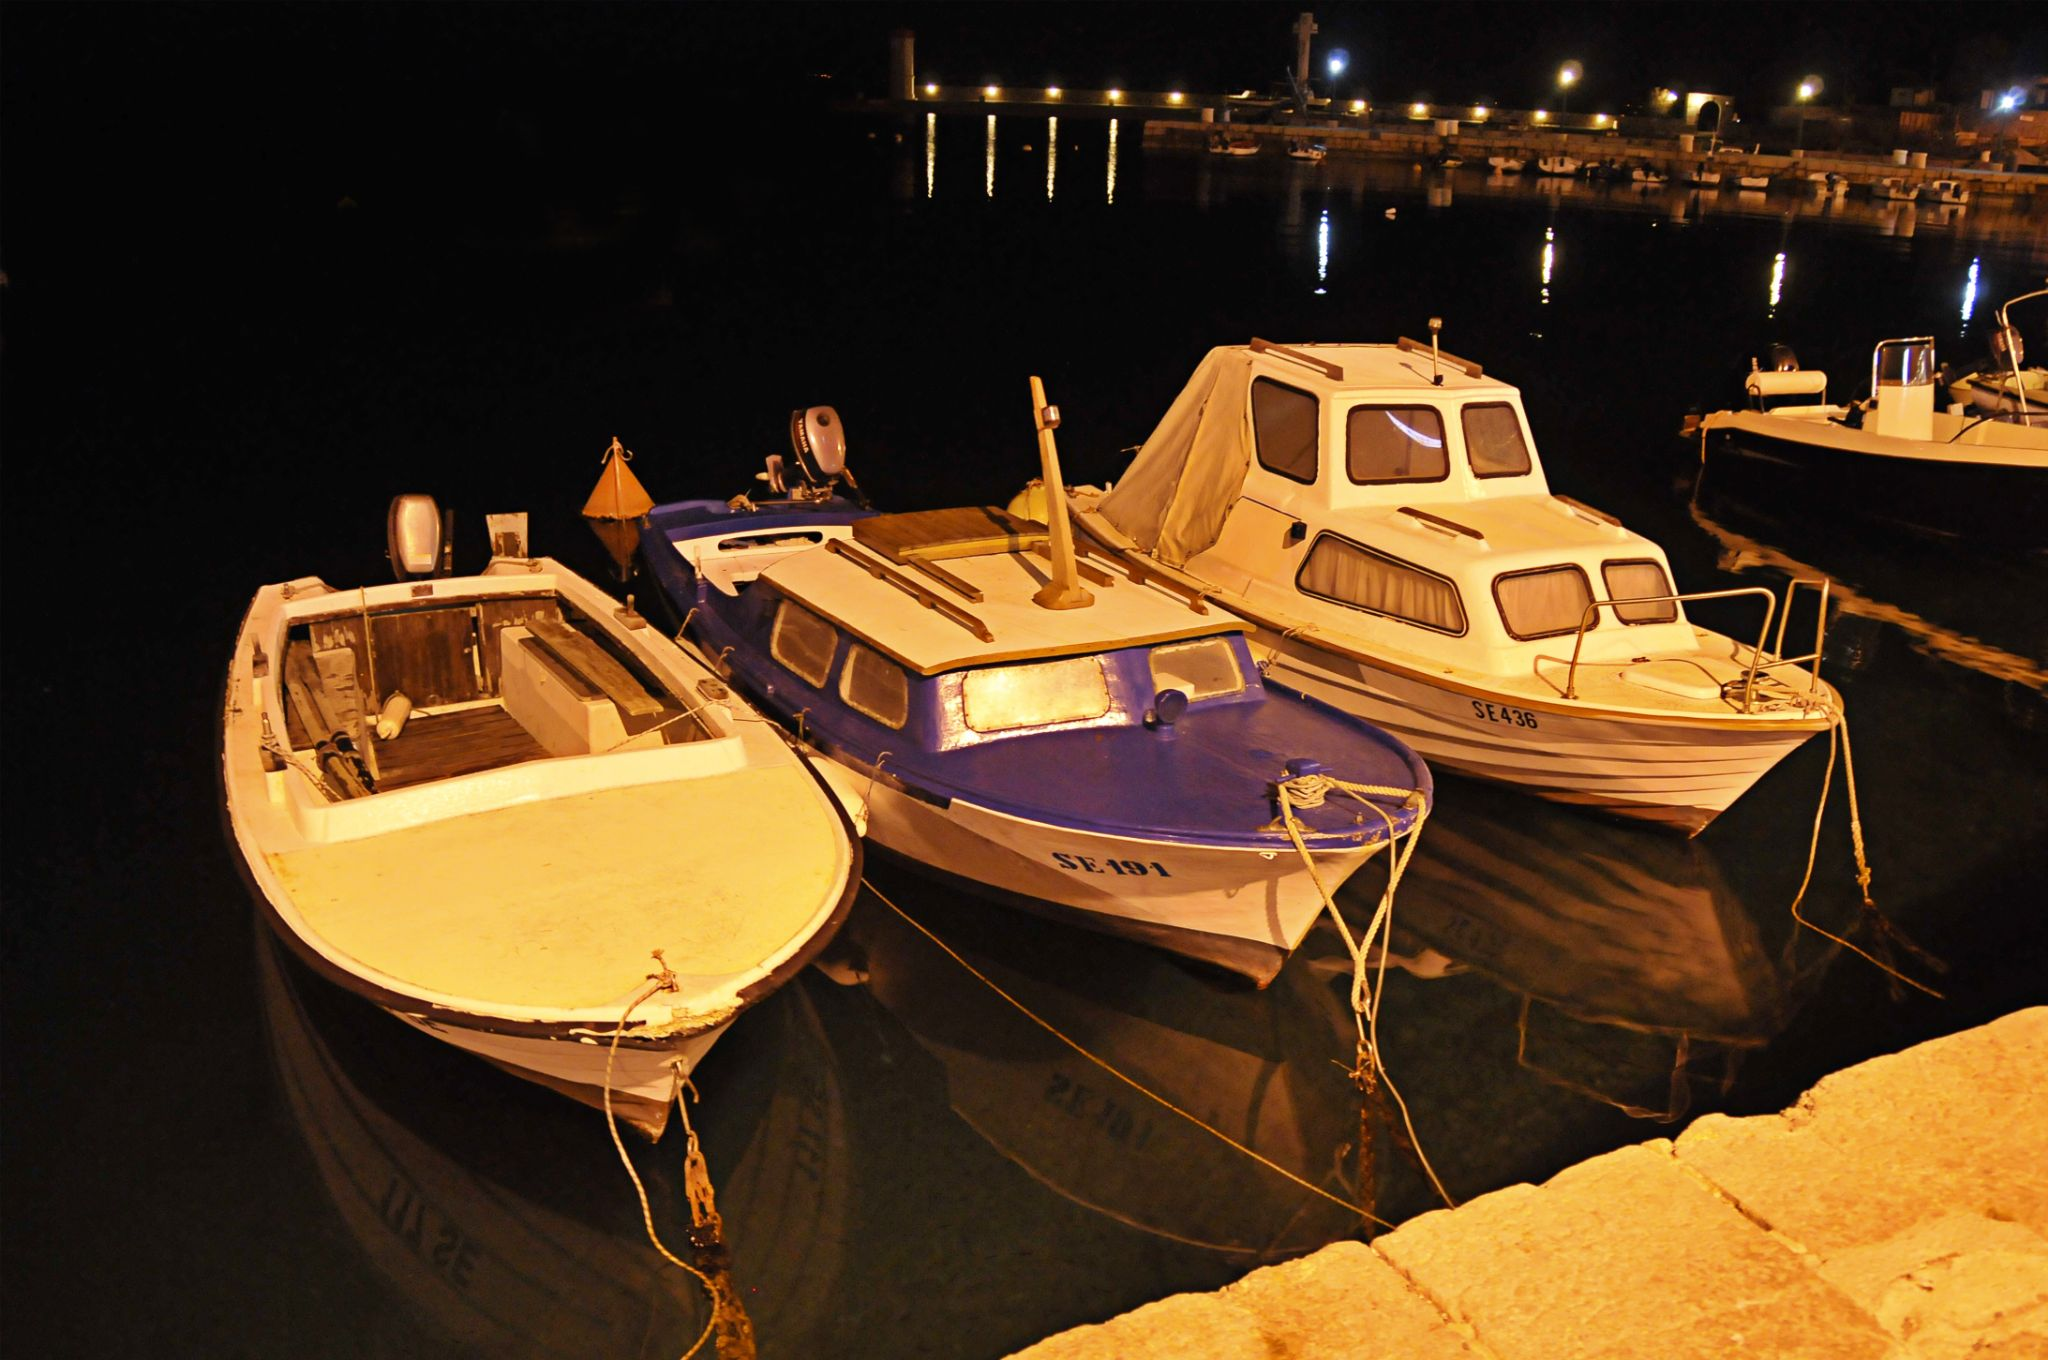 Boats in the night by Luca Bortolazzi Yupo